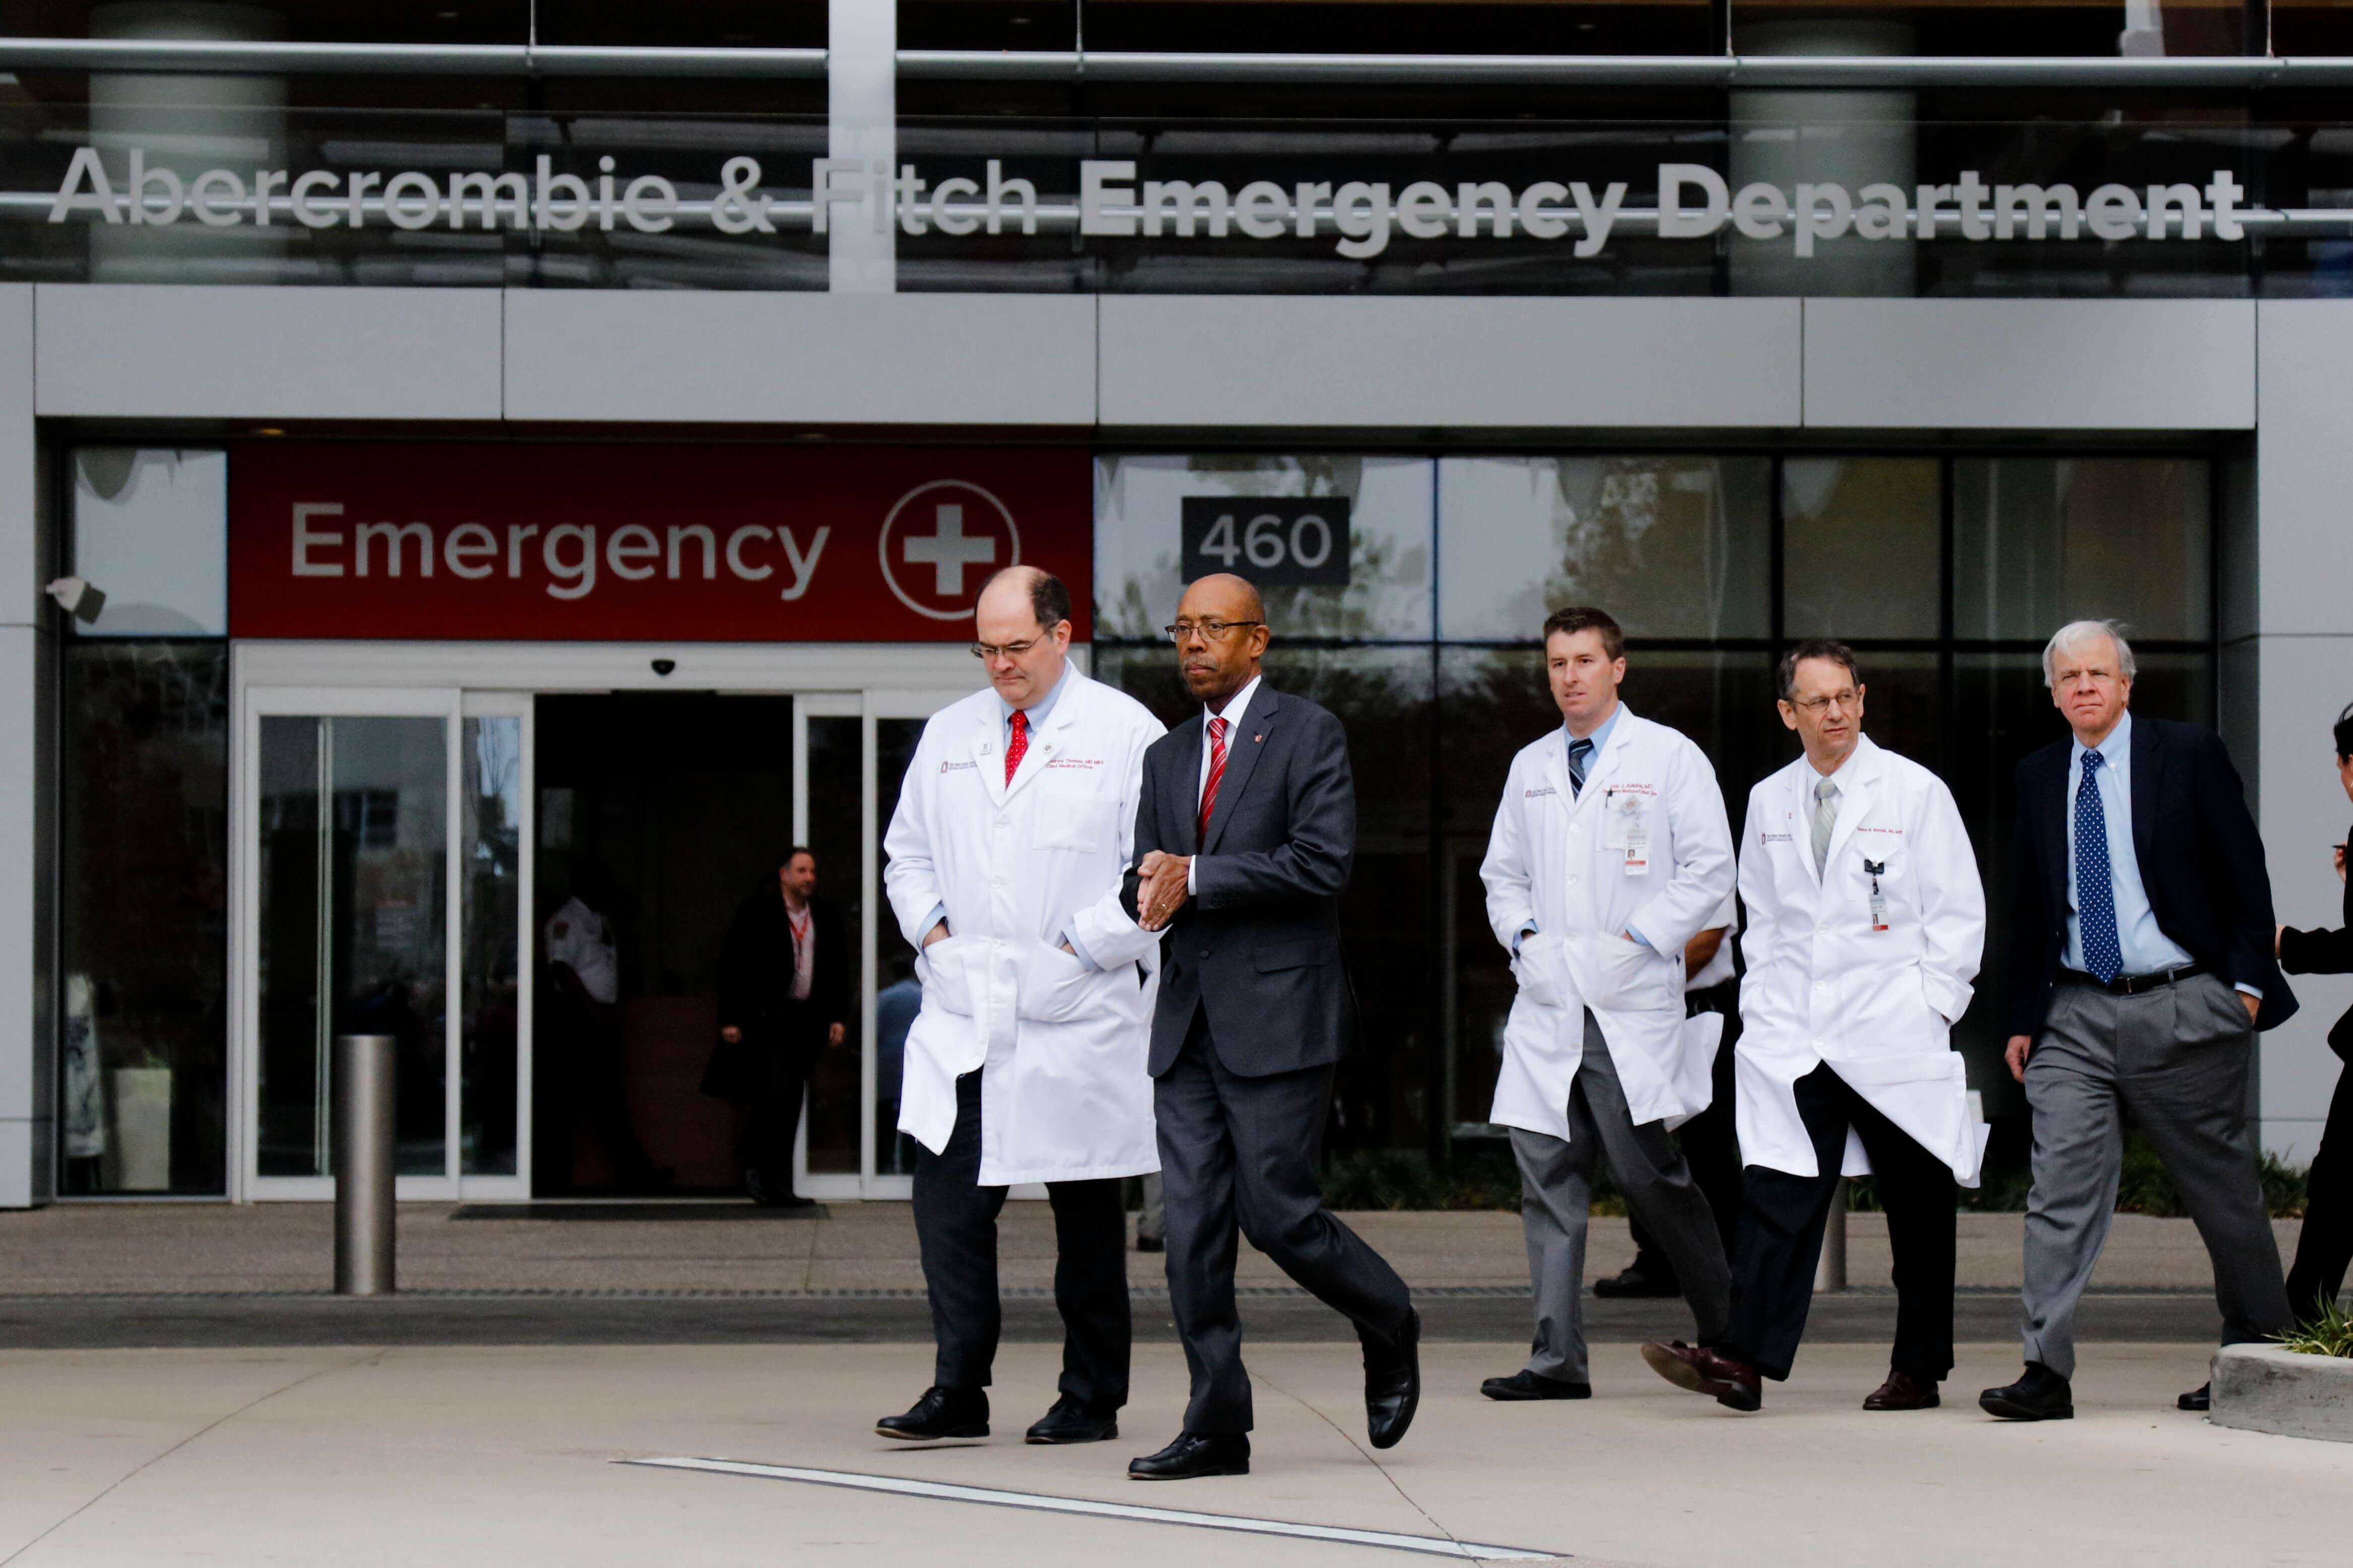 Ohio State University president Michael Drake, second from left, and Dr. Andrew Thomas, chief medical officer at the Wexner Medical Center, walk toward a press briefing following an attack on campus on Monday, Nov. 28, 2016 outside the Ohio State University Wexner Medical Center in Columbus, Ohio. Nine people were hospitalized after a man ran into pedestrians with his car then exited his vehicle and began cutting victims with a butcher knife. | Joshua A. Bickel/The Columbus Dispatch) /The Columbus Dispatch via AP, St. George News